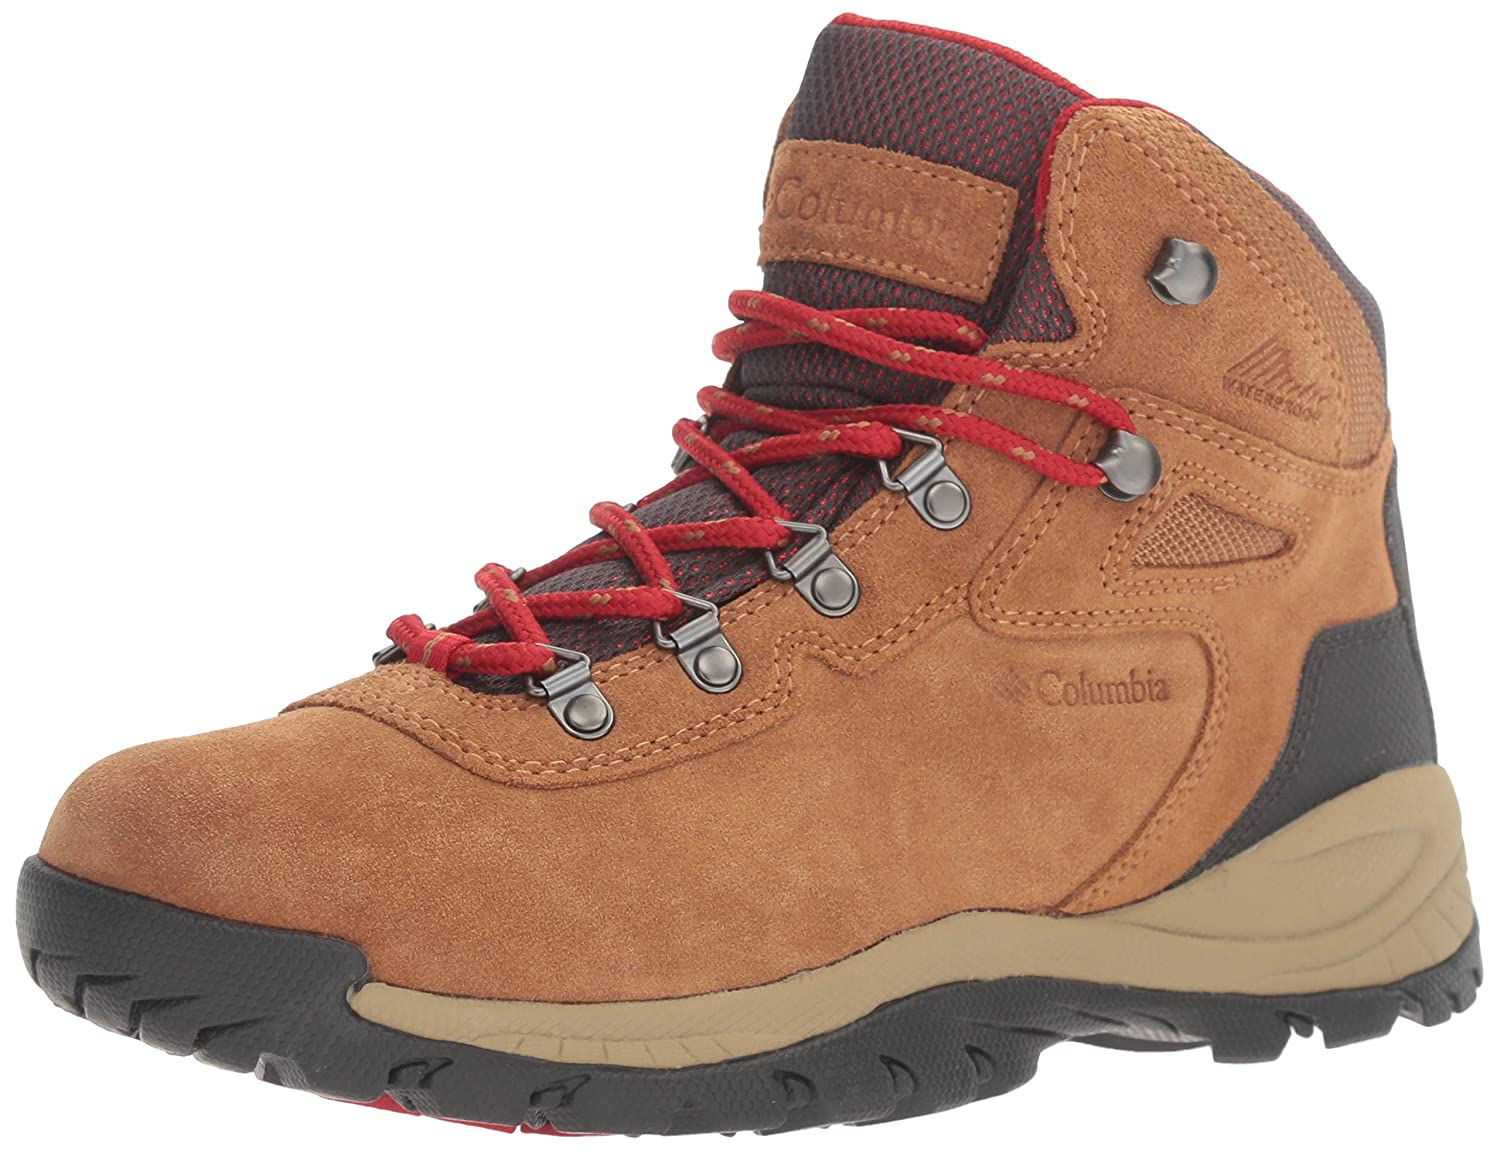 Columbia Newton Ridge Plus Amped Hiking Boots For Women